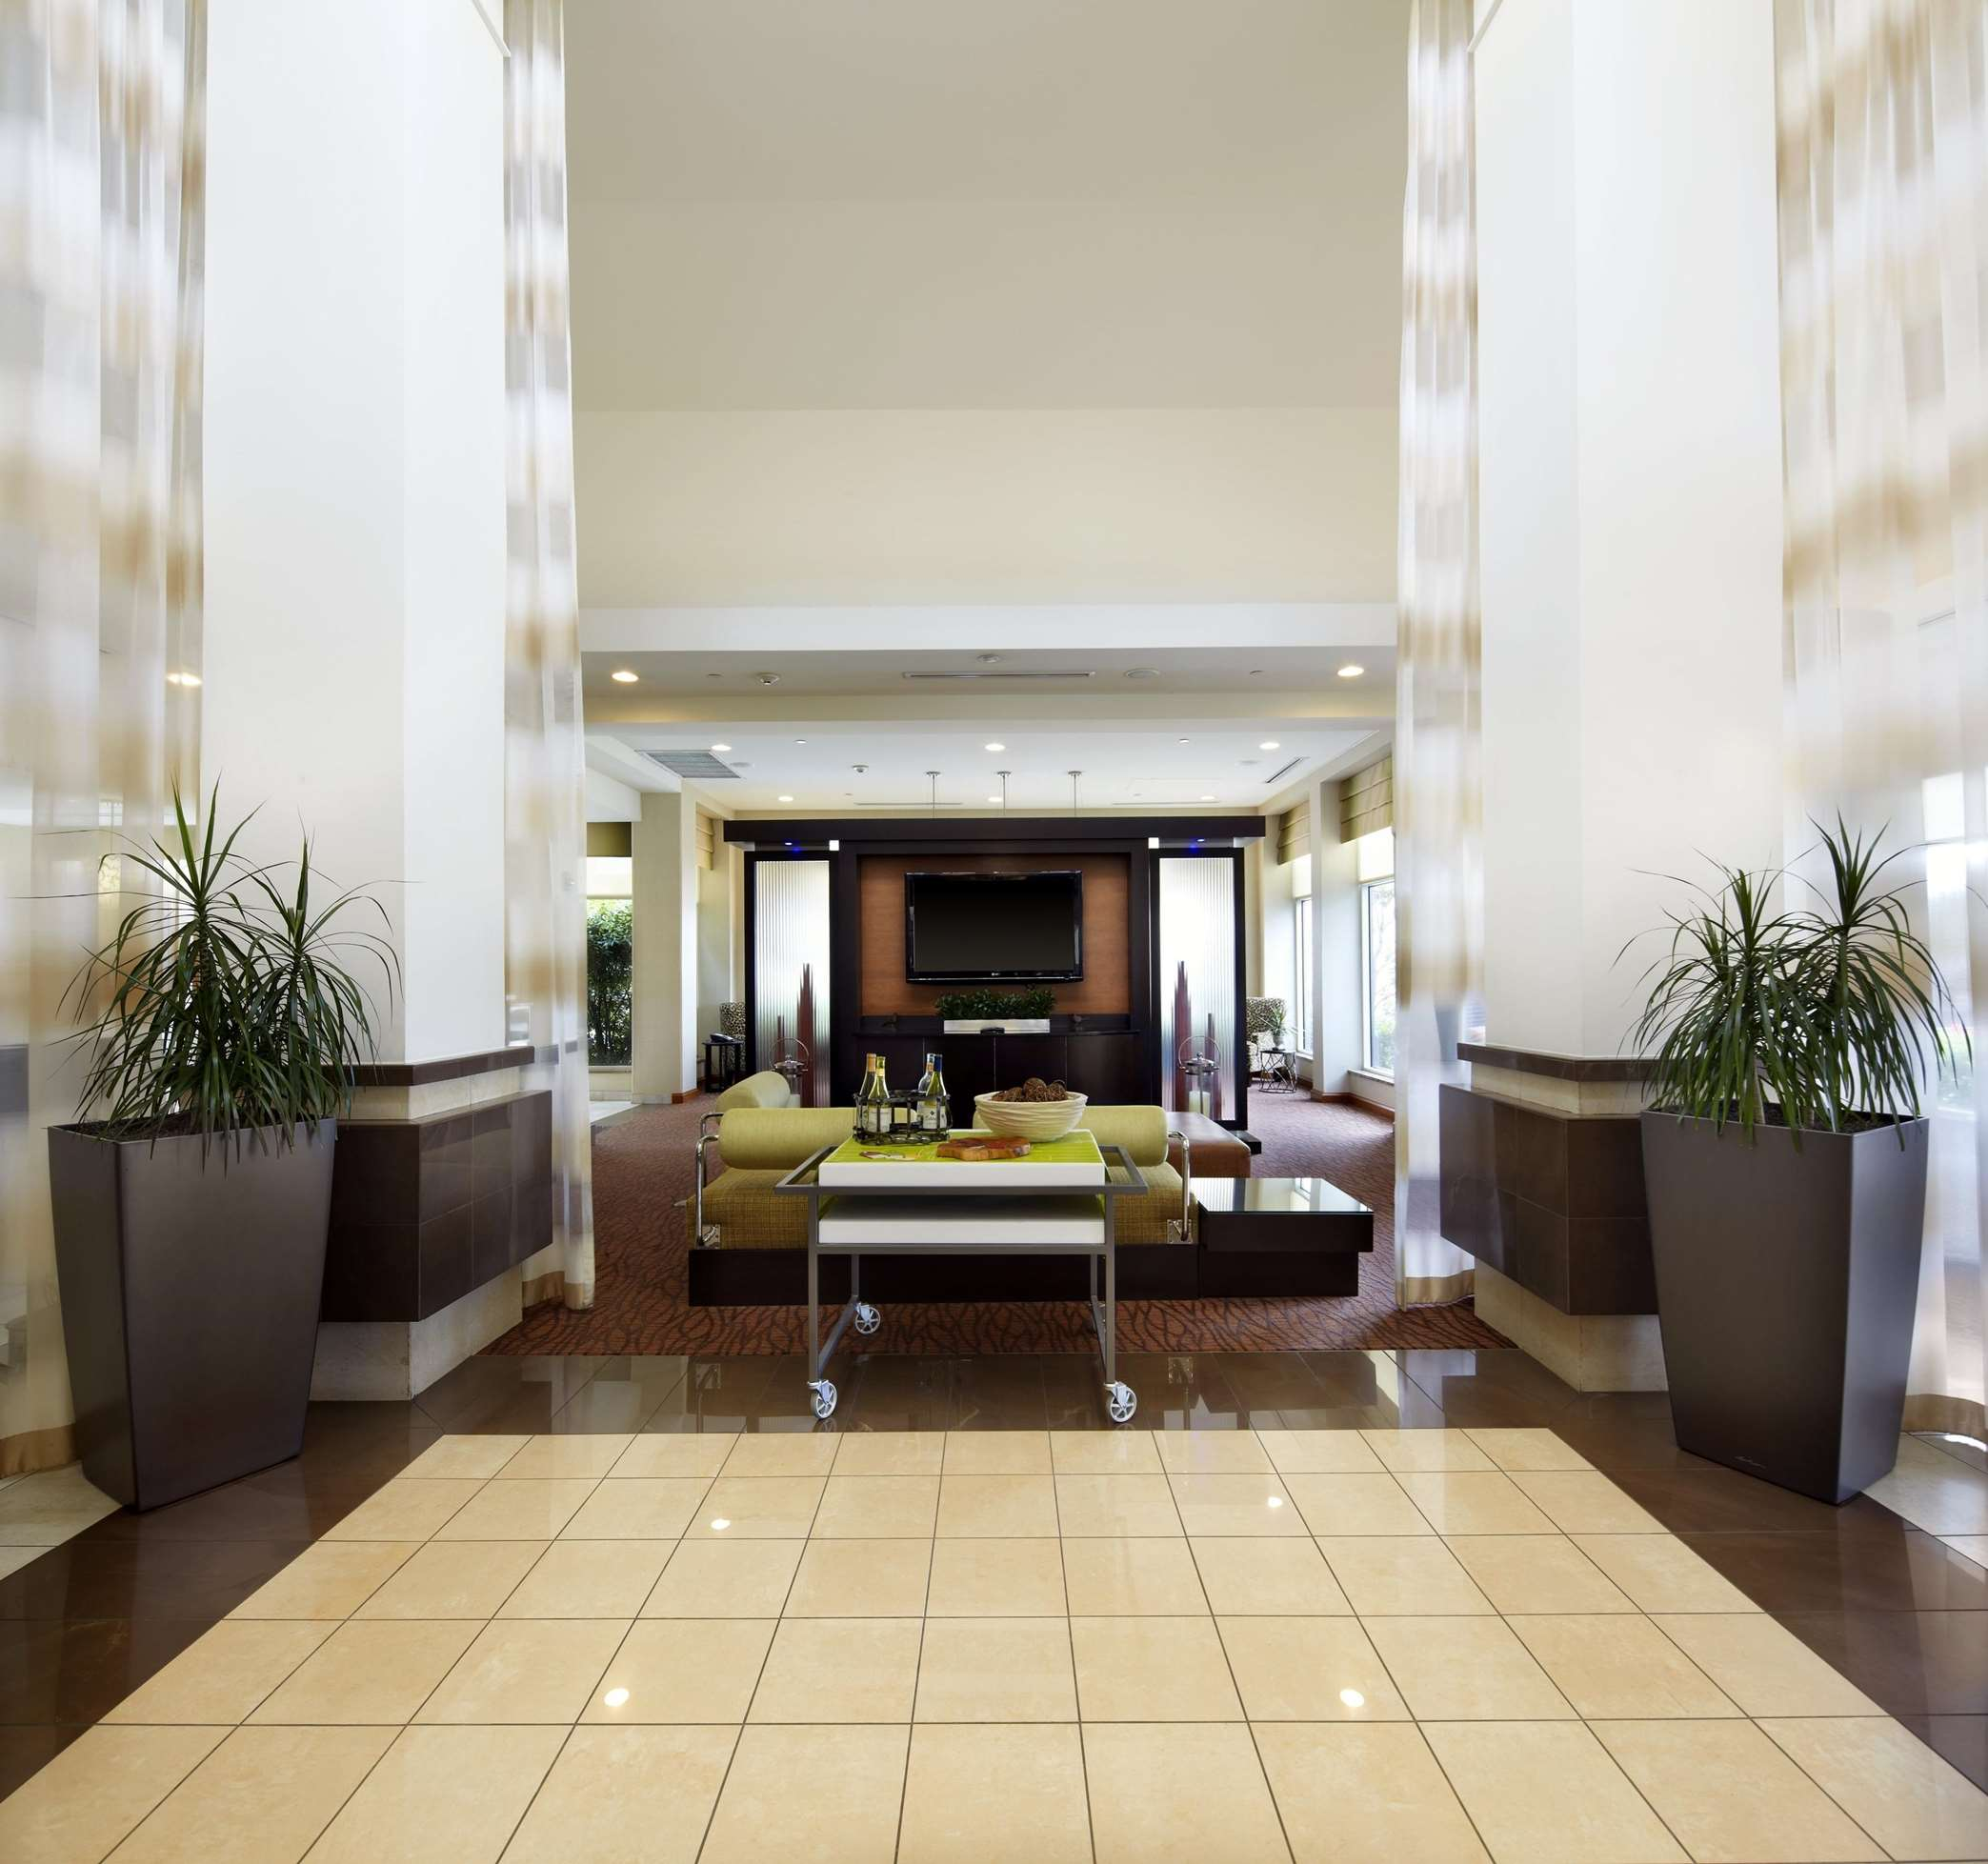 Hilton Garden Inn Dallas/Arlington image 39